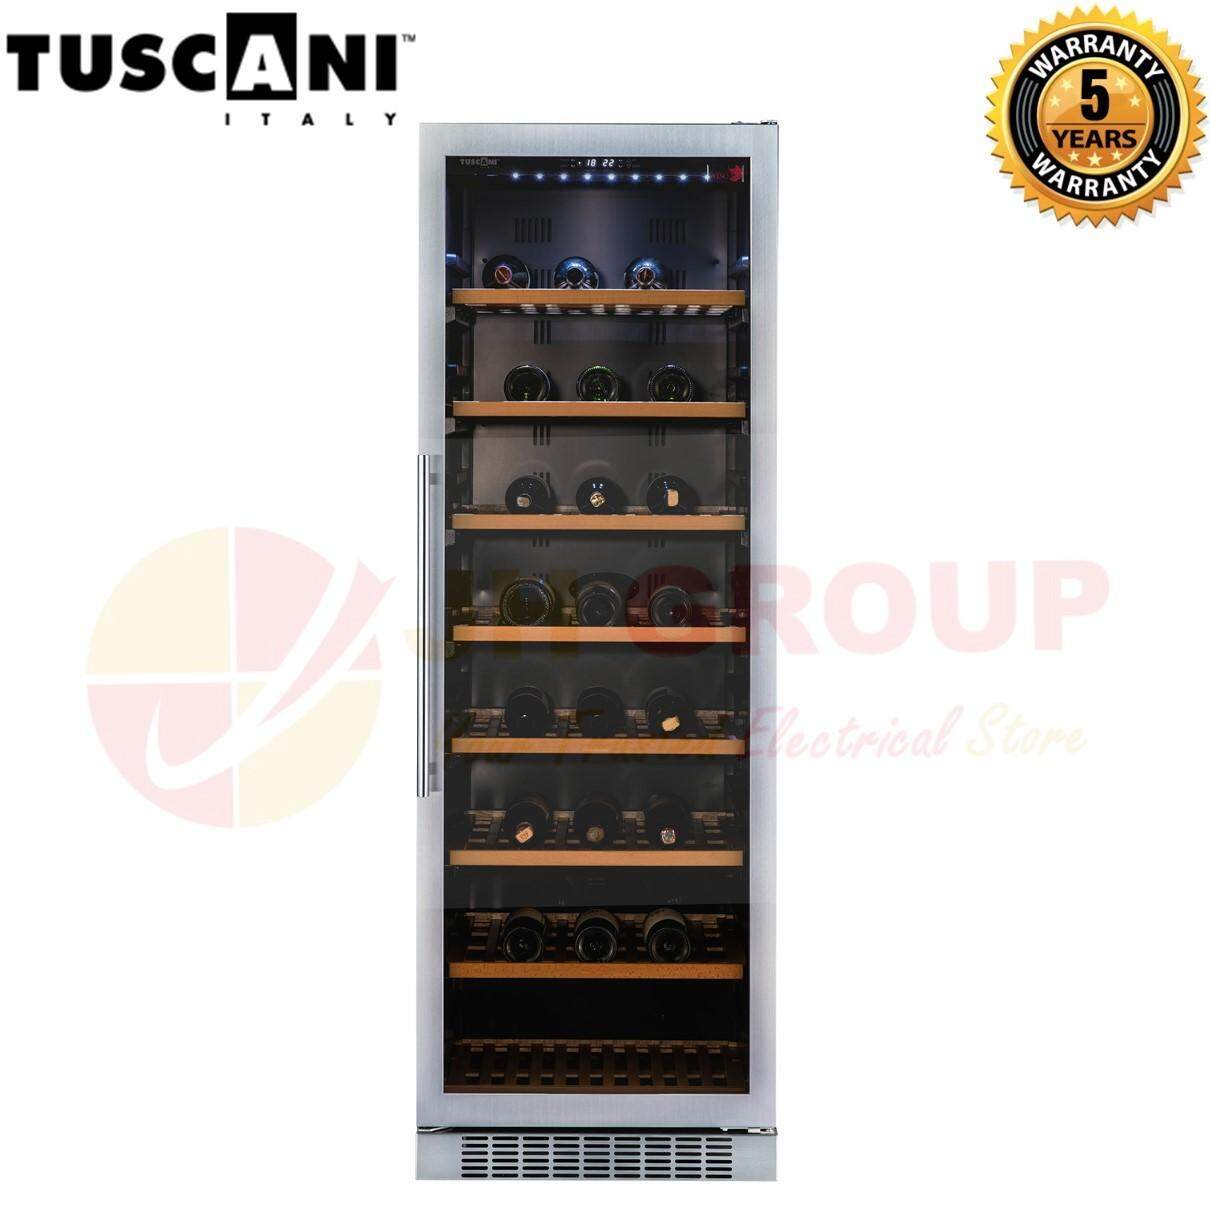 Tuscani Italy Tsc Bellona 166 (ss) 424l Seamless Stainless Steel Door Wine Cellar ( 151 Bottles ) Wine Chiller Wine Cooler Wine Cabinet Wine Fridge By Jh Ecommerce.